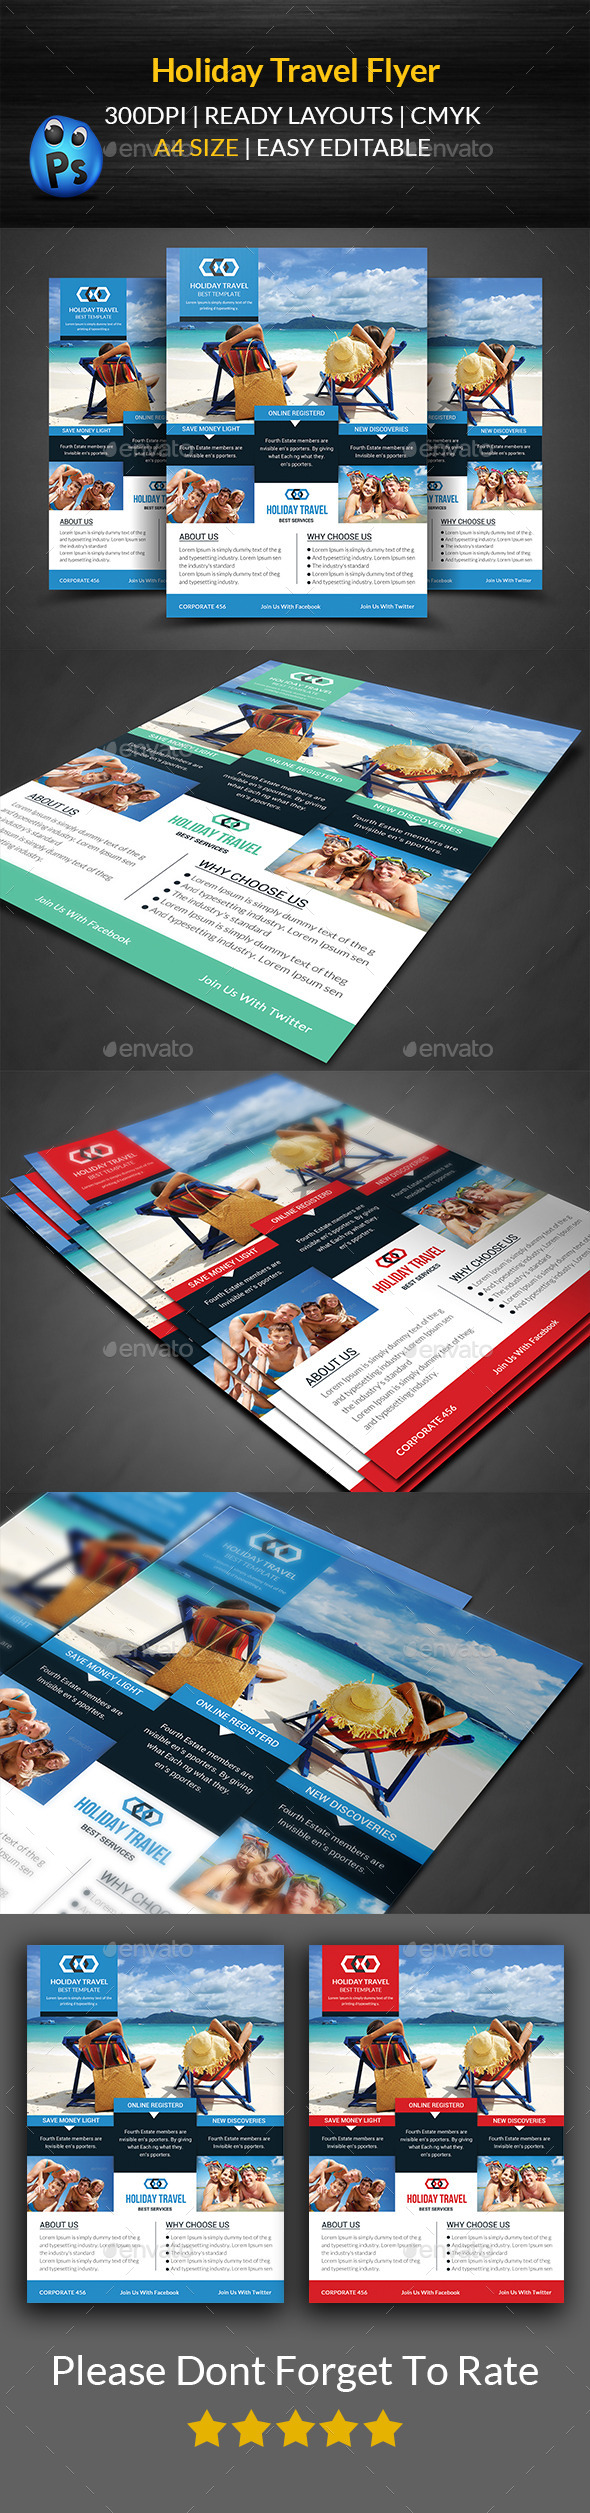 Holiday Travel Flyer Print Templates  - Corporate Flyers